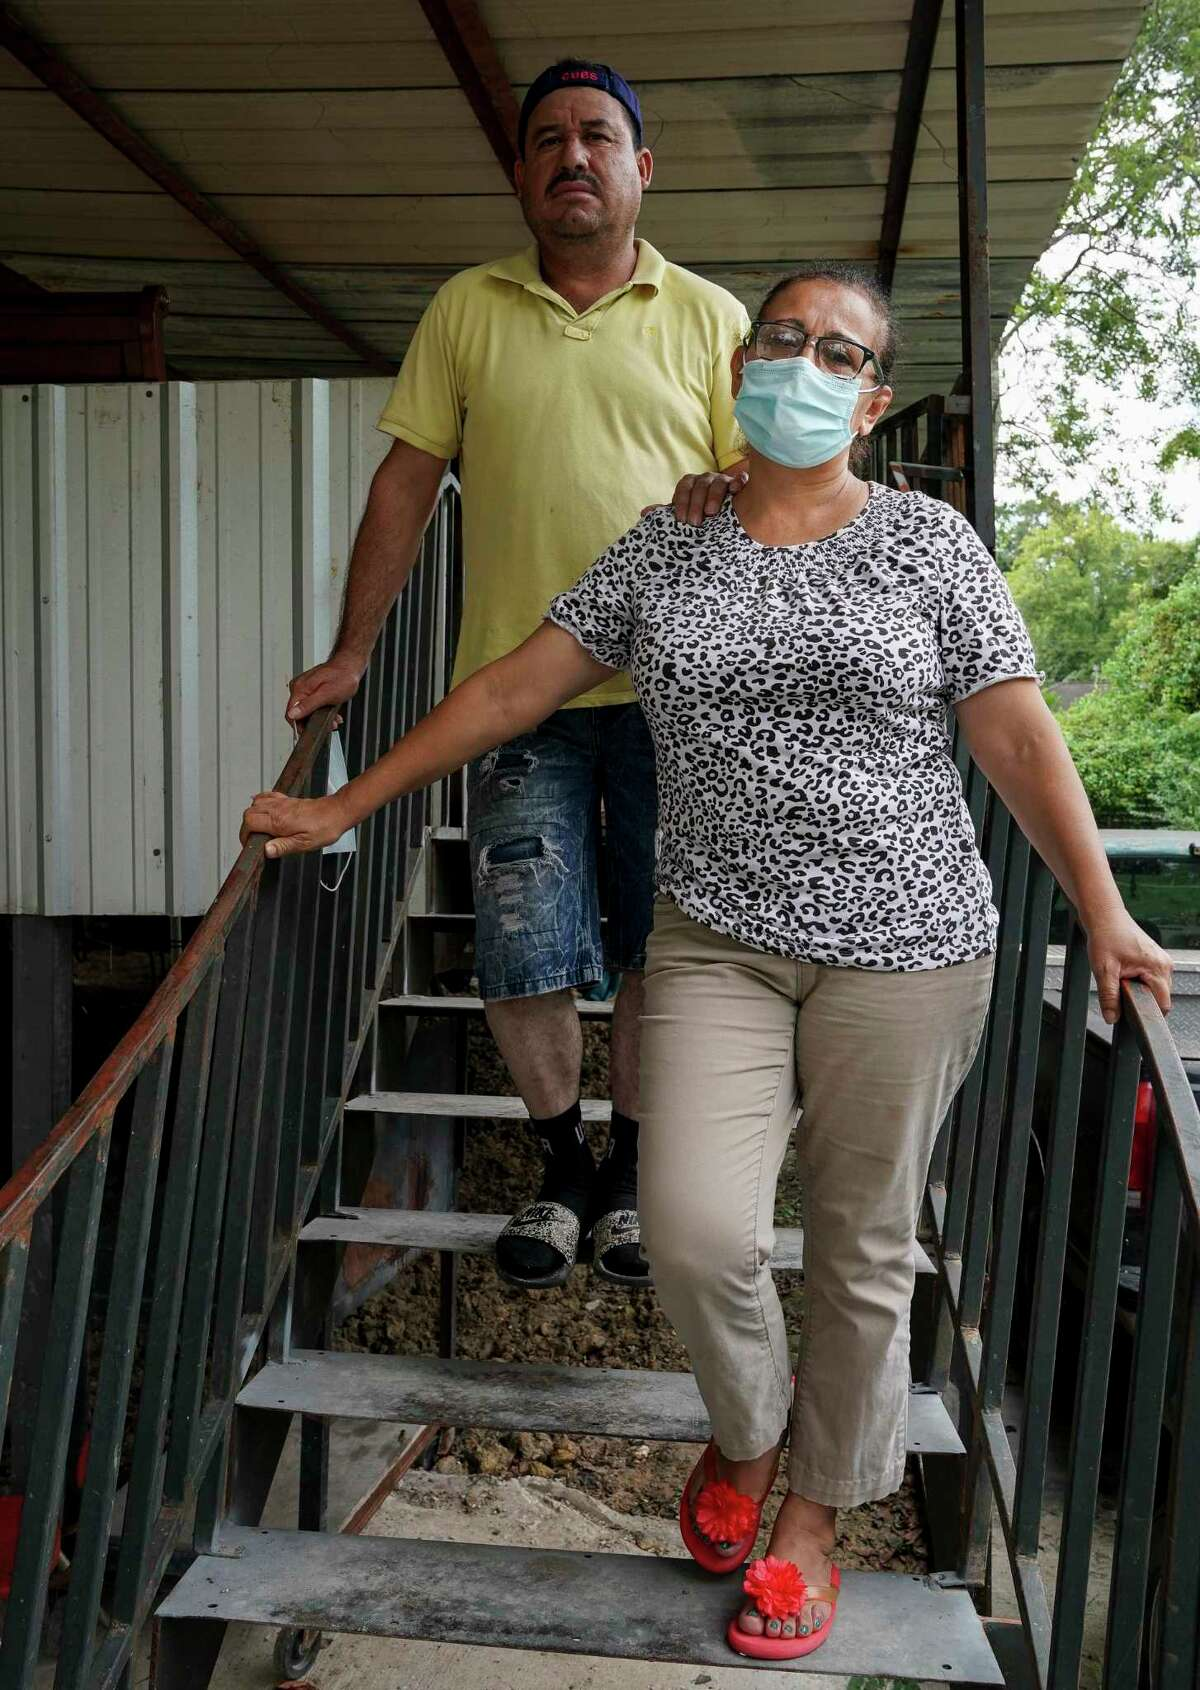 Jose Diaz and his wife Gloria pose for a photograph at their home Friday, Sept. 11, 2020, in Houston. Harris County's mandatory home buyout program, would force the Diaz family to move.